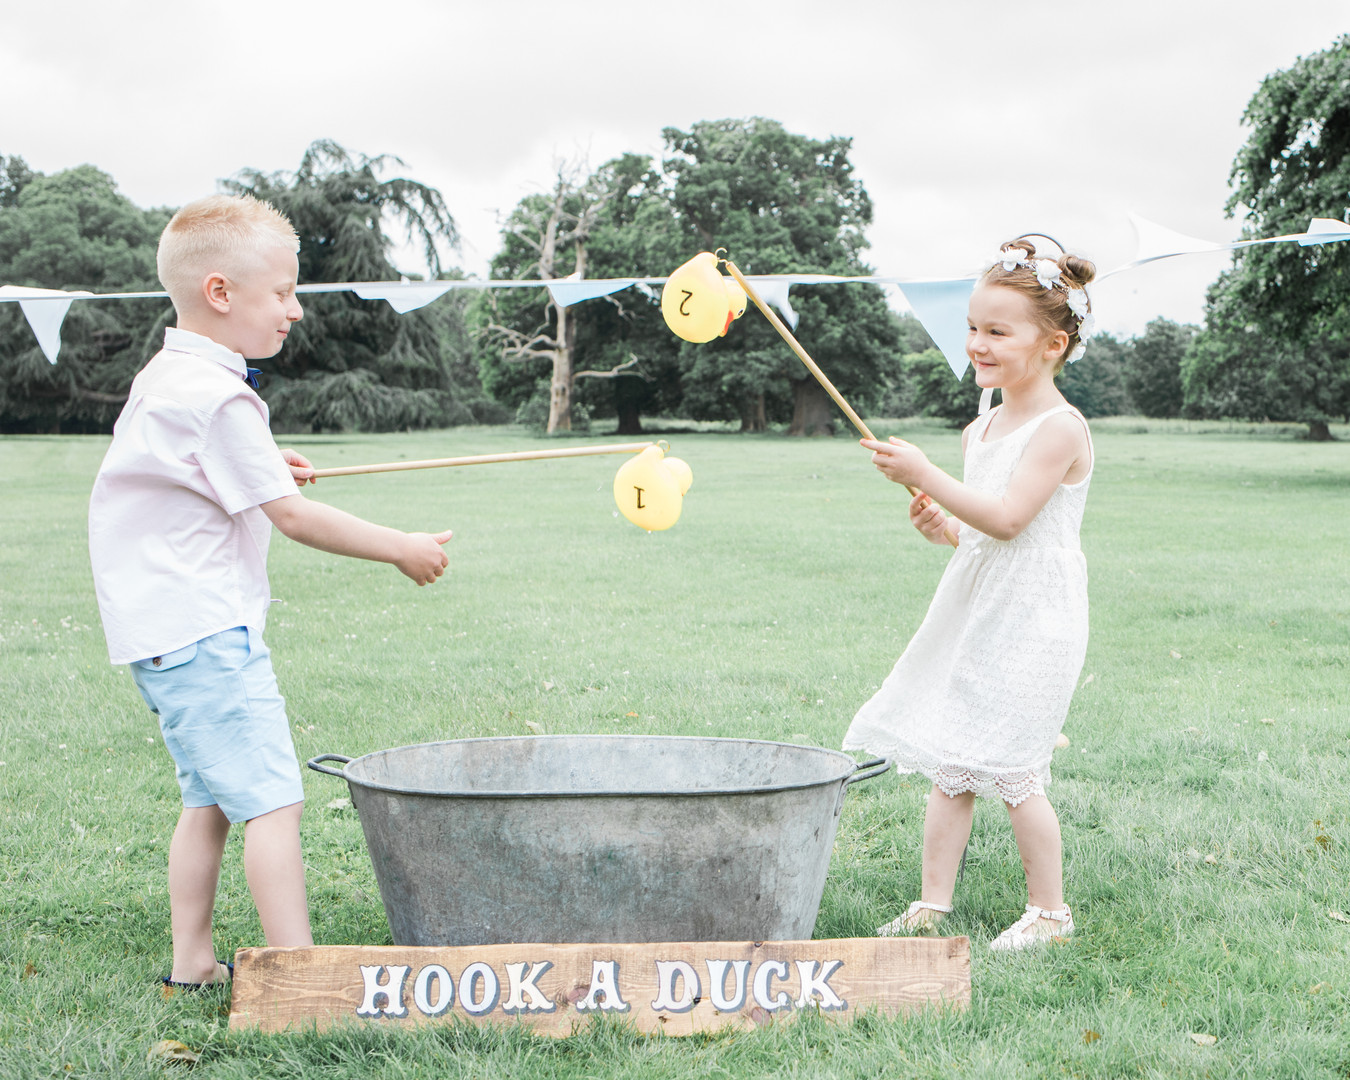 Hook a Duck hire in hertfordshire